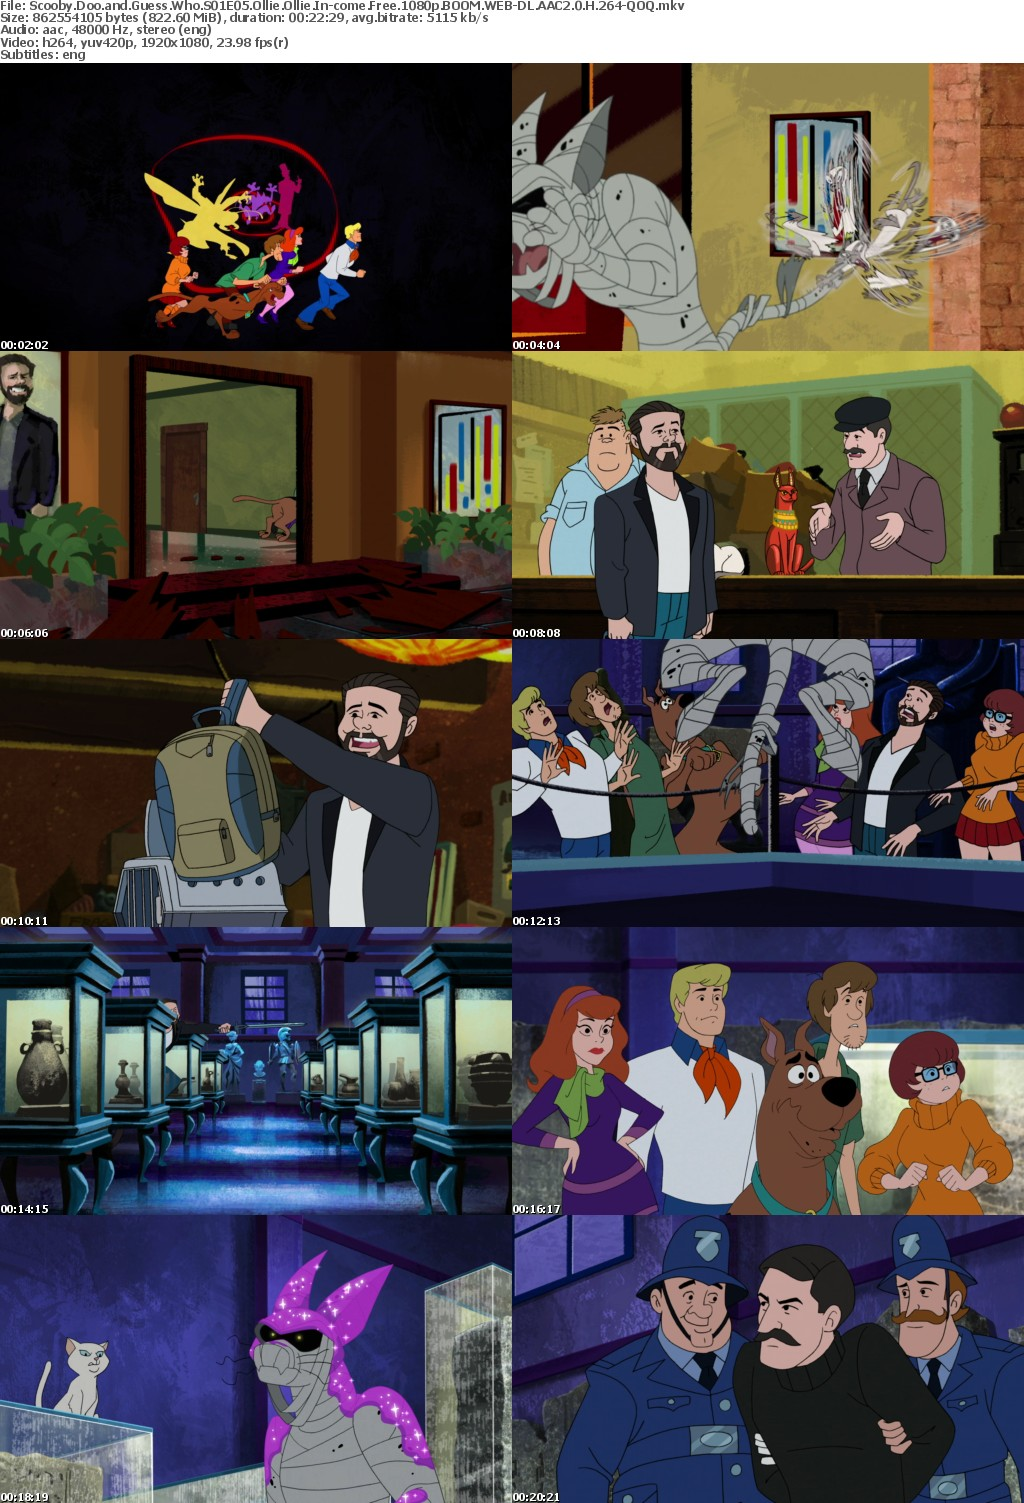 Scooby Doo and Guess Who S01E05 Ollie Ollie In-come Free 1080p BOOM WEB-DL AAC2 0 H 264-QOQ